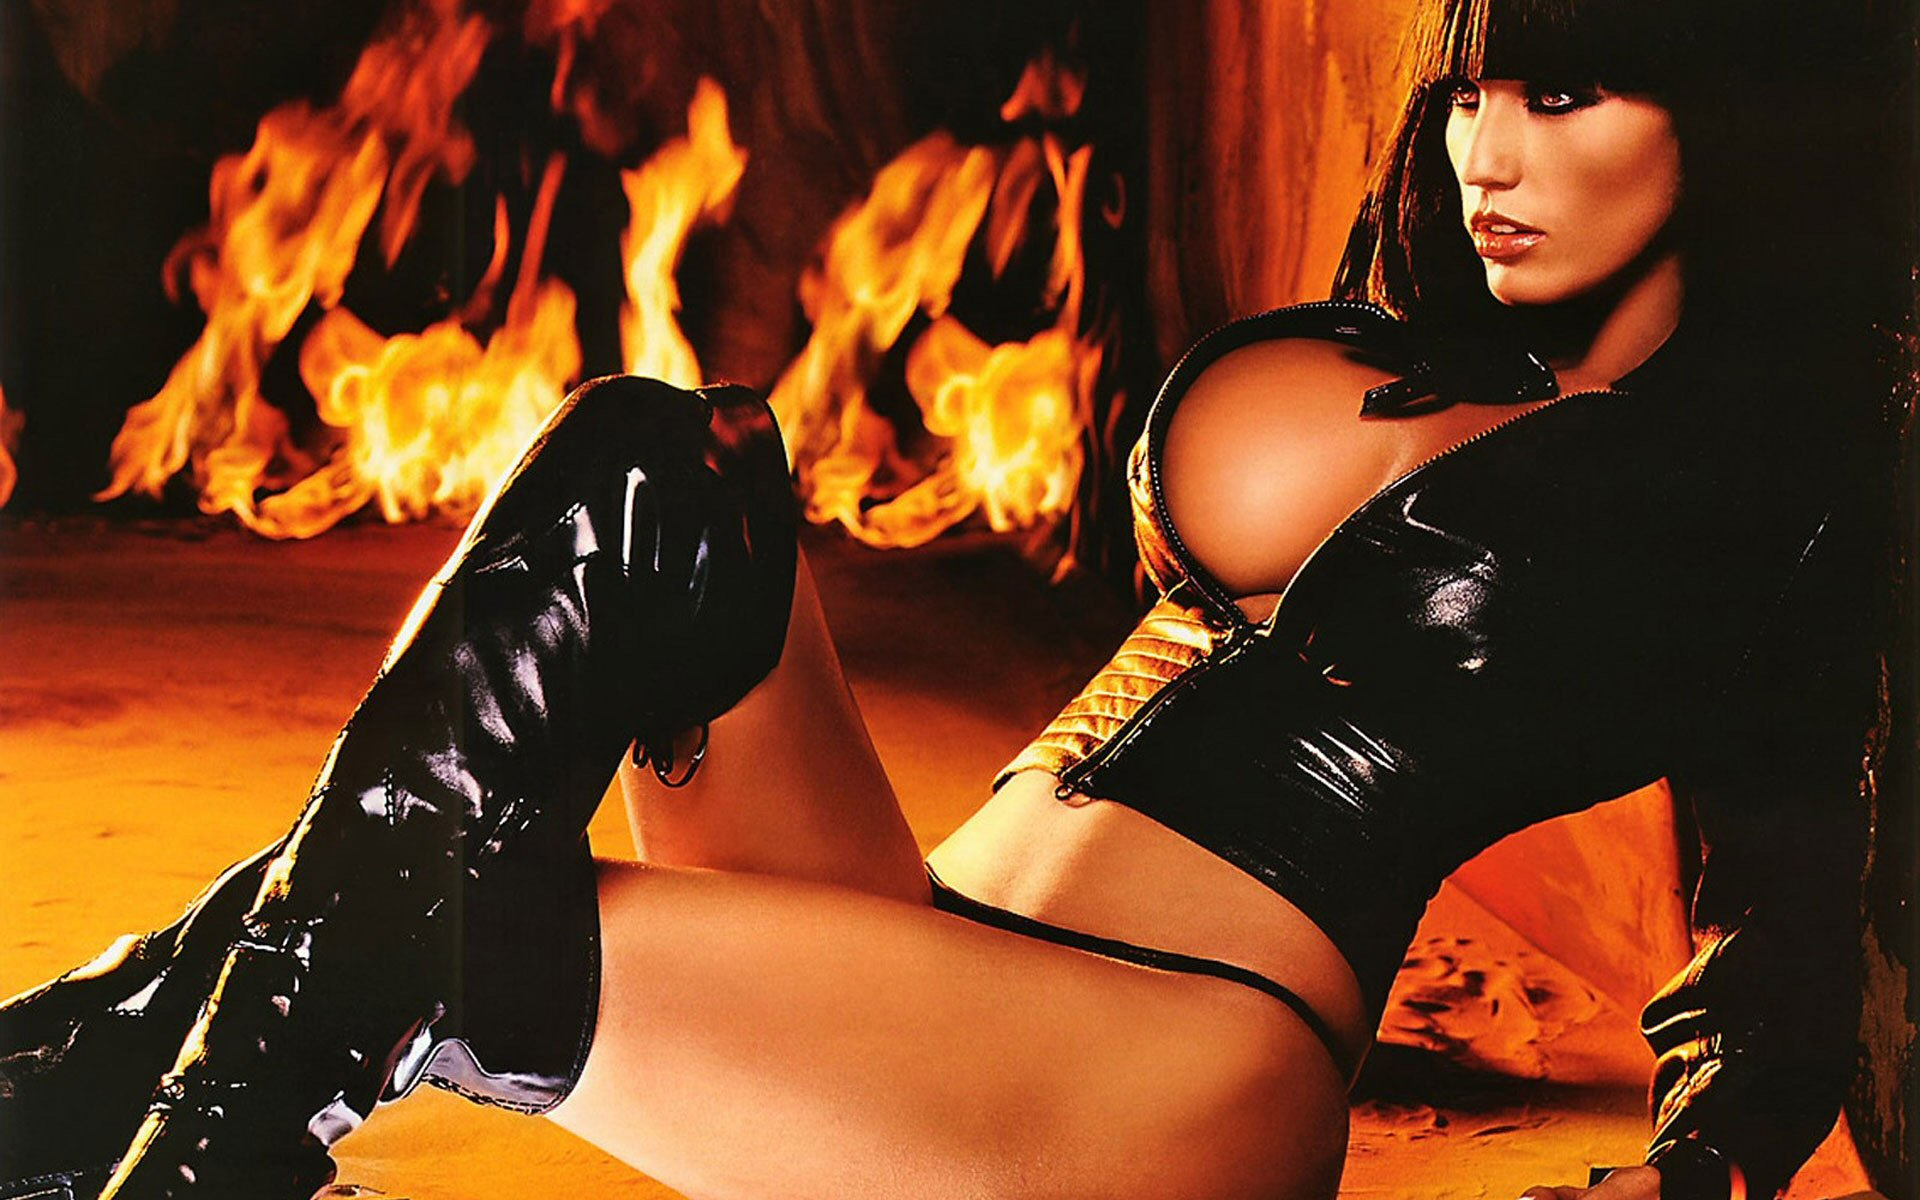 katie-price-jordan-exotic-in-black-leather-1-1920x1200